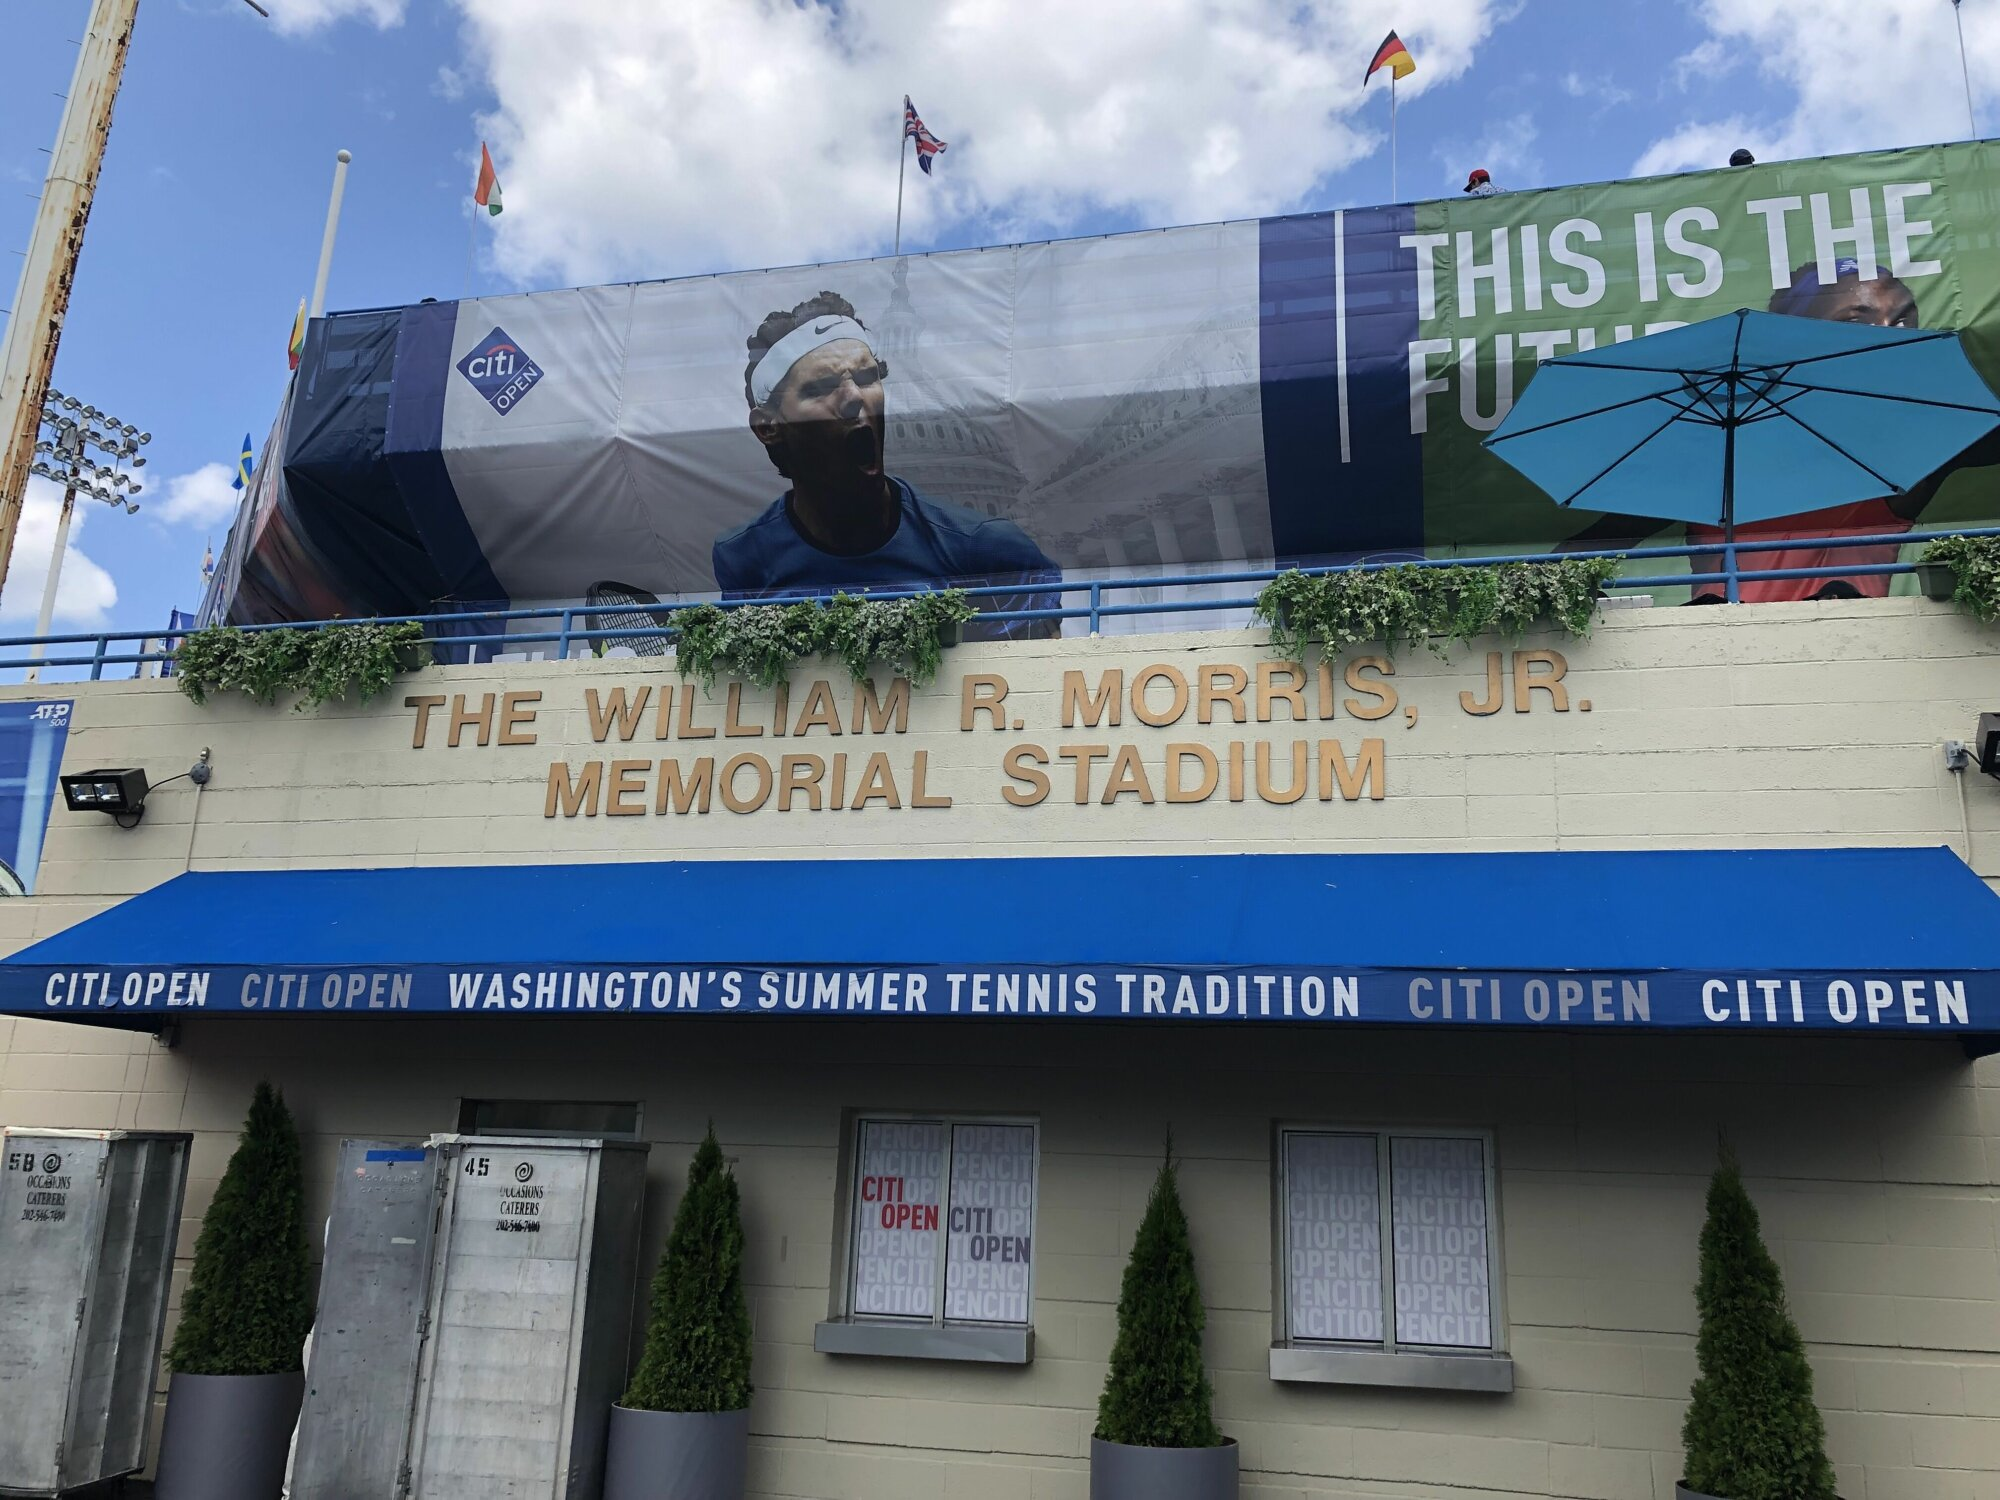 Citi Open attracts tennis stars, followers to DC | WTOP